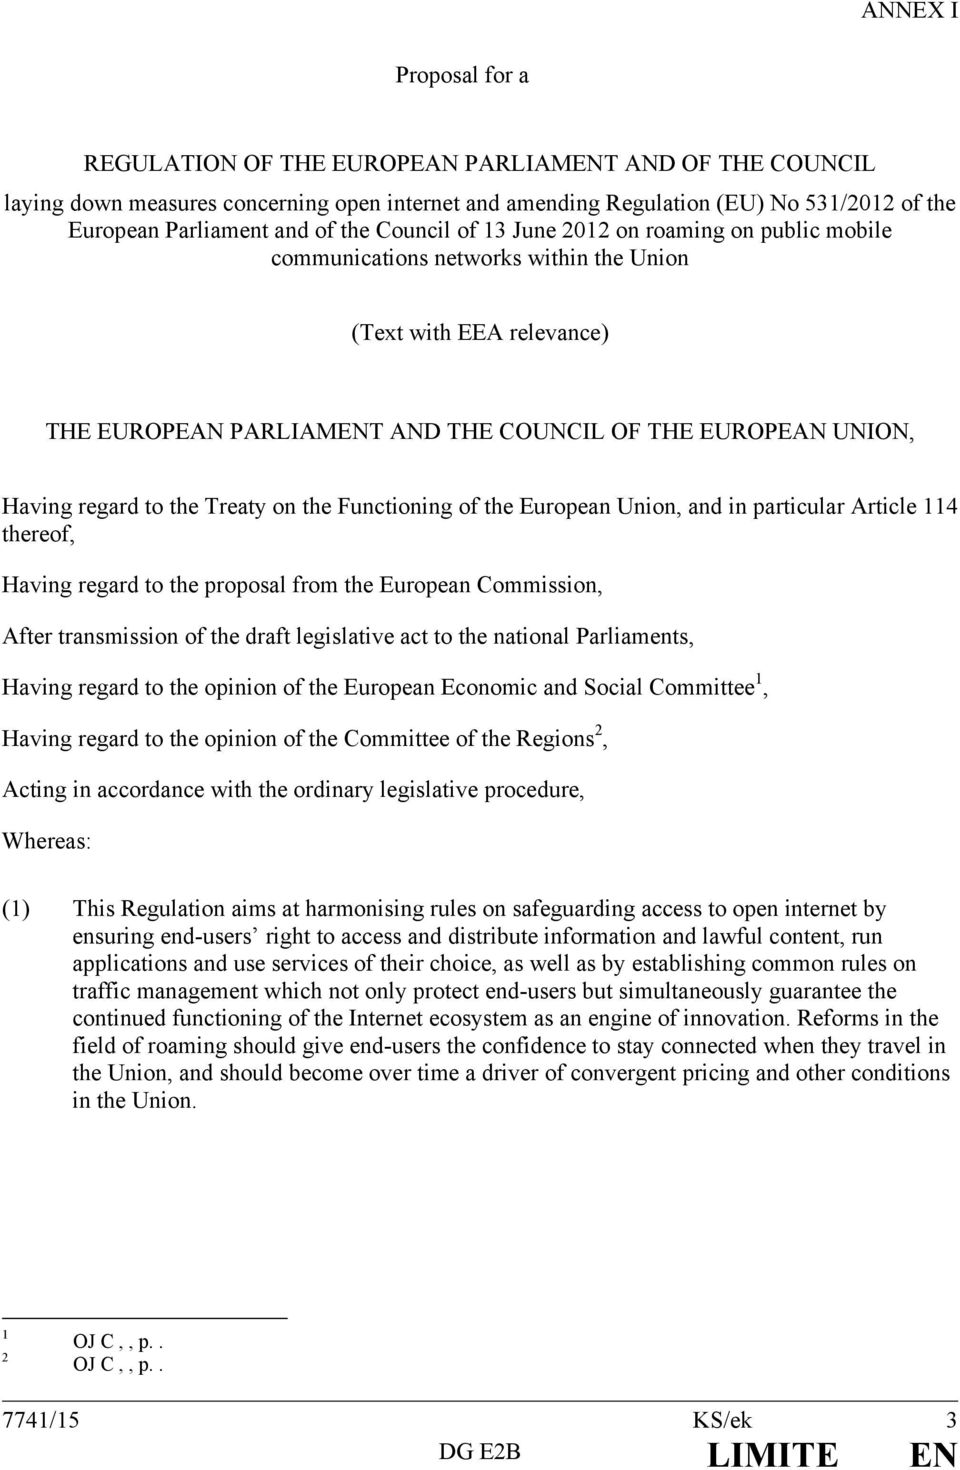 regard to the Treaty on the Functioning of the European Union, and in particular Article 114 thereof, Having regard to the proposal from the European Commission, After transmission of the draft